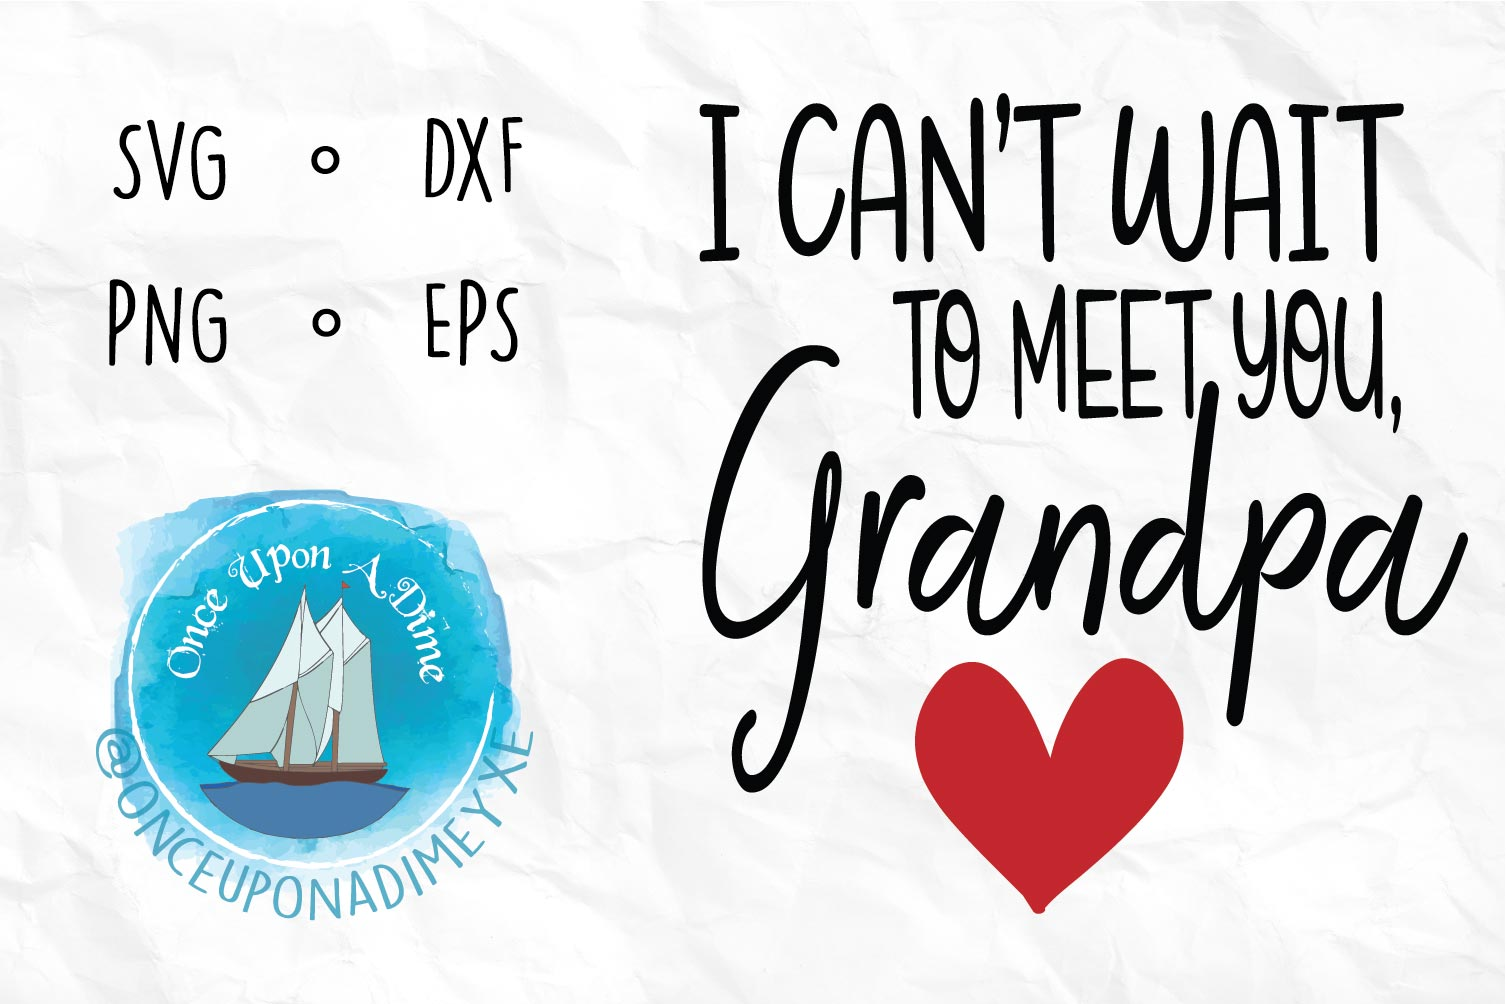 Meet You, Grandpa | Baby| Baby Announcement SVG Cut File example image 1